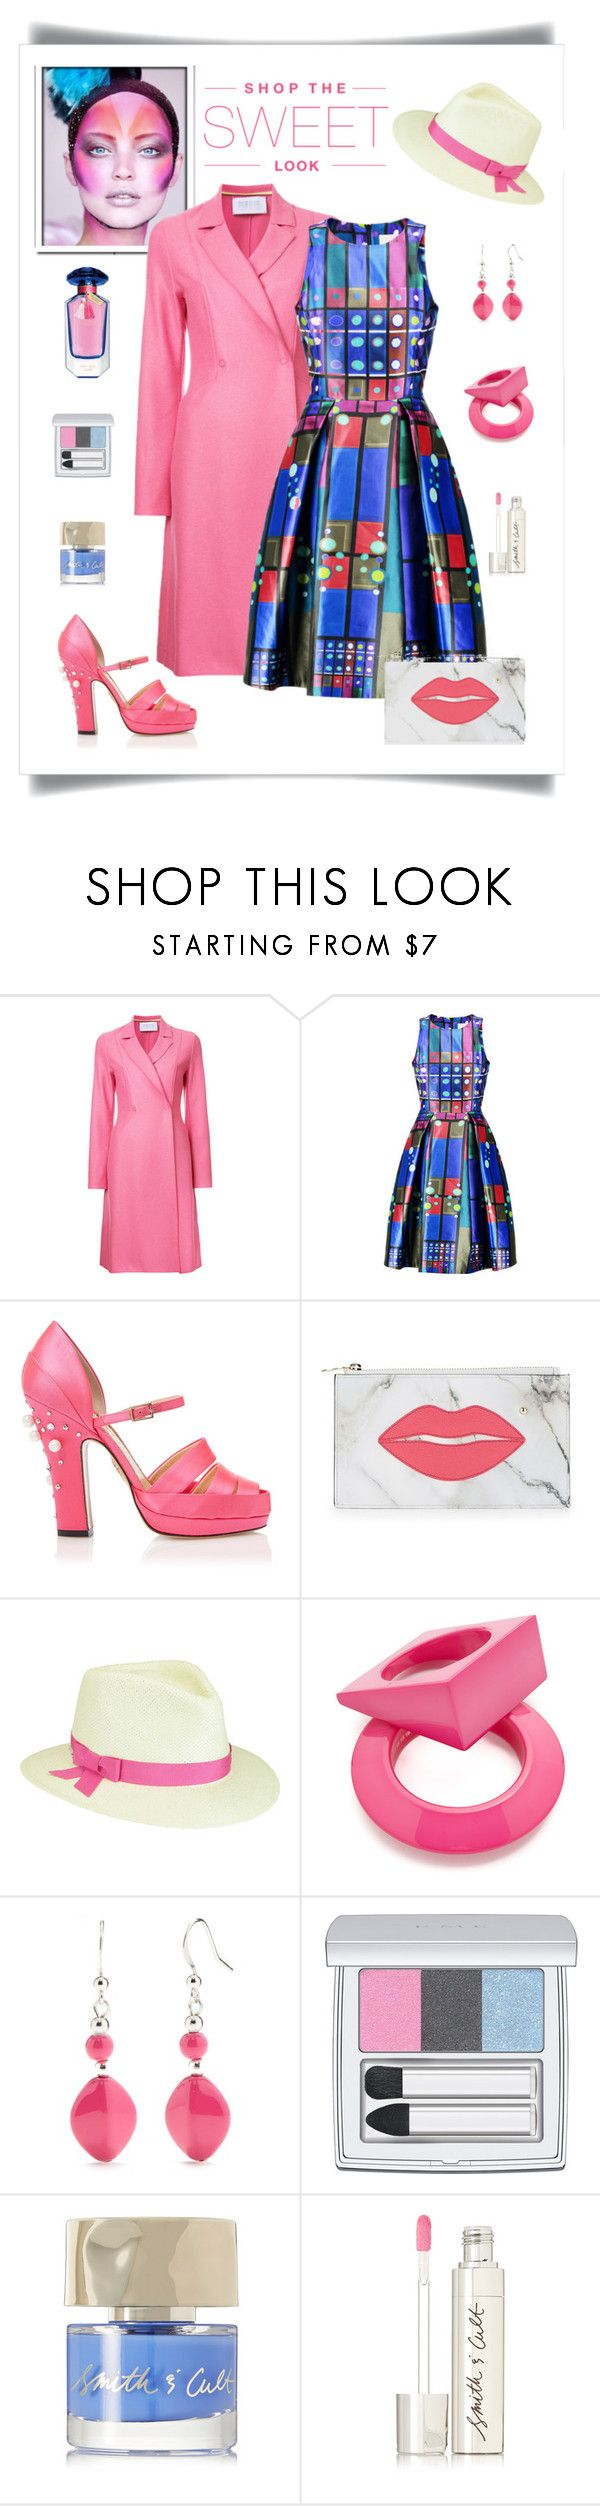 """""""Peter Pilotto Printed Silk Dress Look"""" by romaboots-1 ❤ liked on Polyvore featuring Harris Wharf London, Peter Pilotto, Charlotte Olympia, Betmar, Maison Margiela, Kim Rogers, RMK and Smith & Cult"""